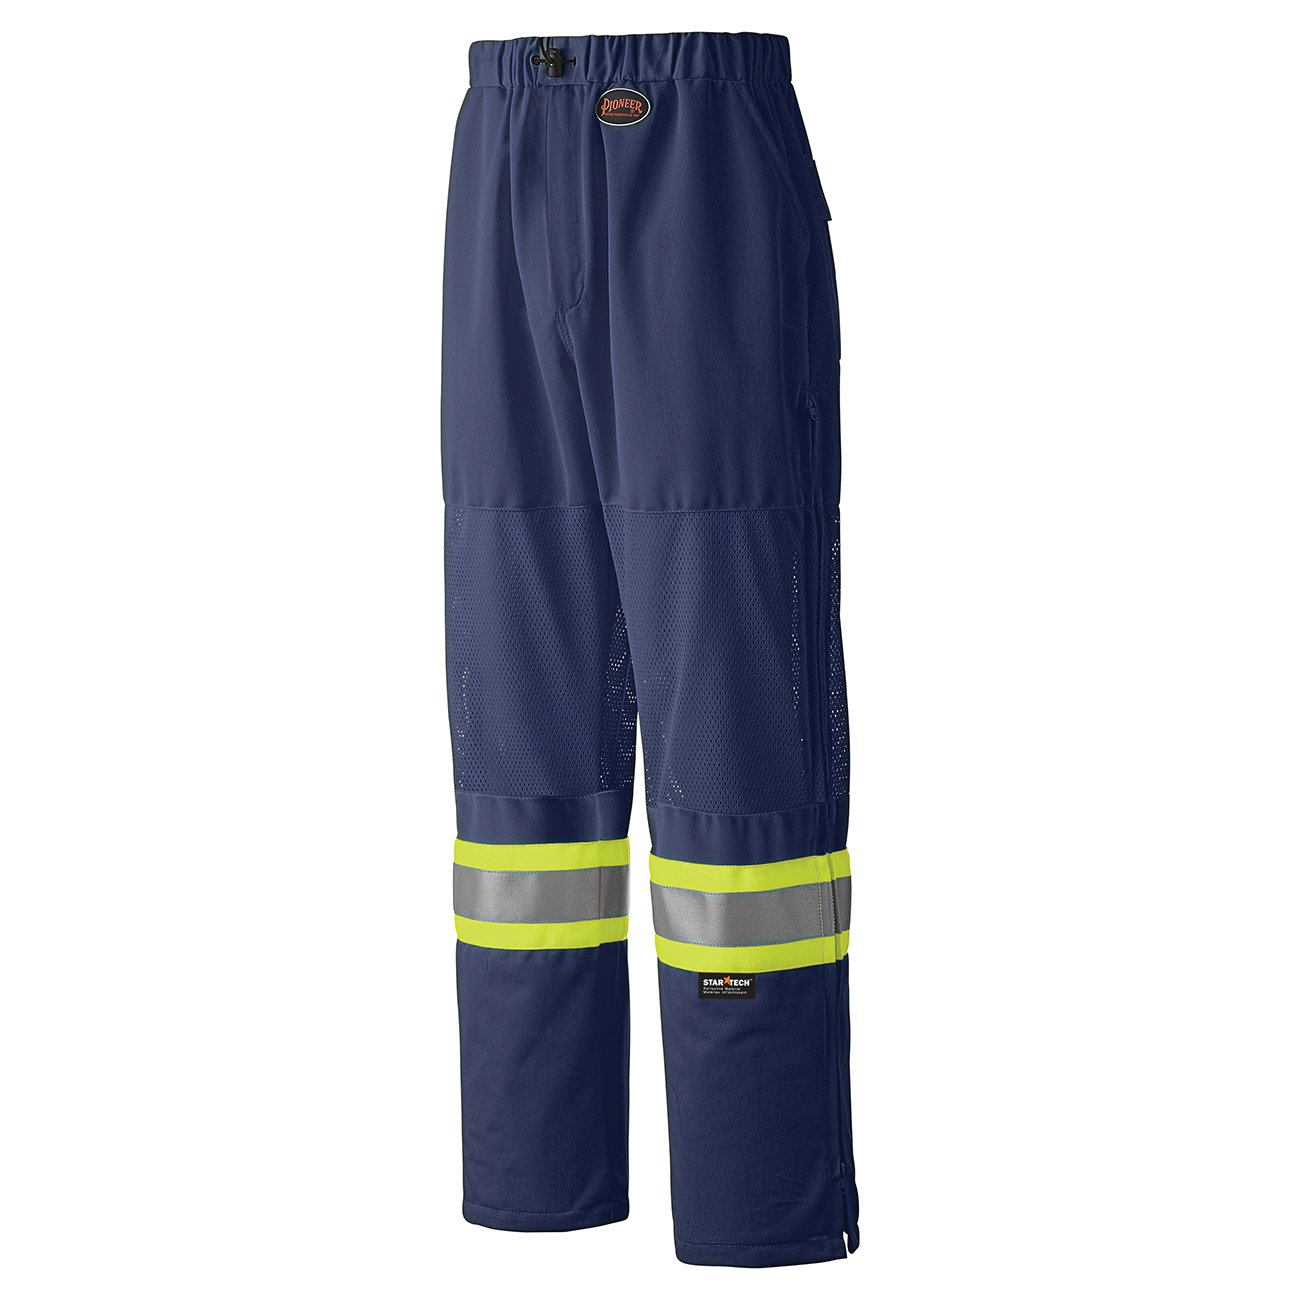 Pioneer Hi-Viz Traffic Safety Pant V1070380 - 6003P